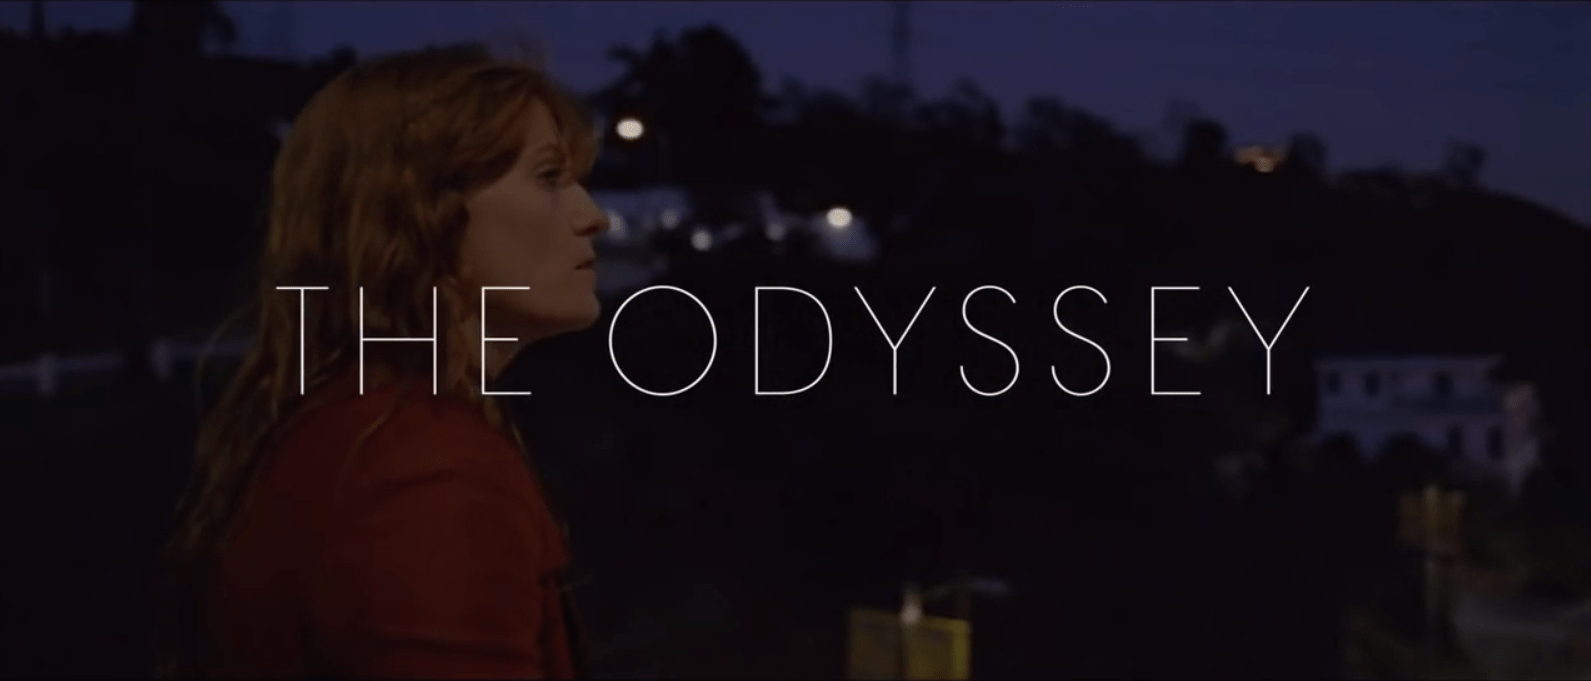 the odyssey florence and the machine